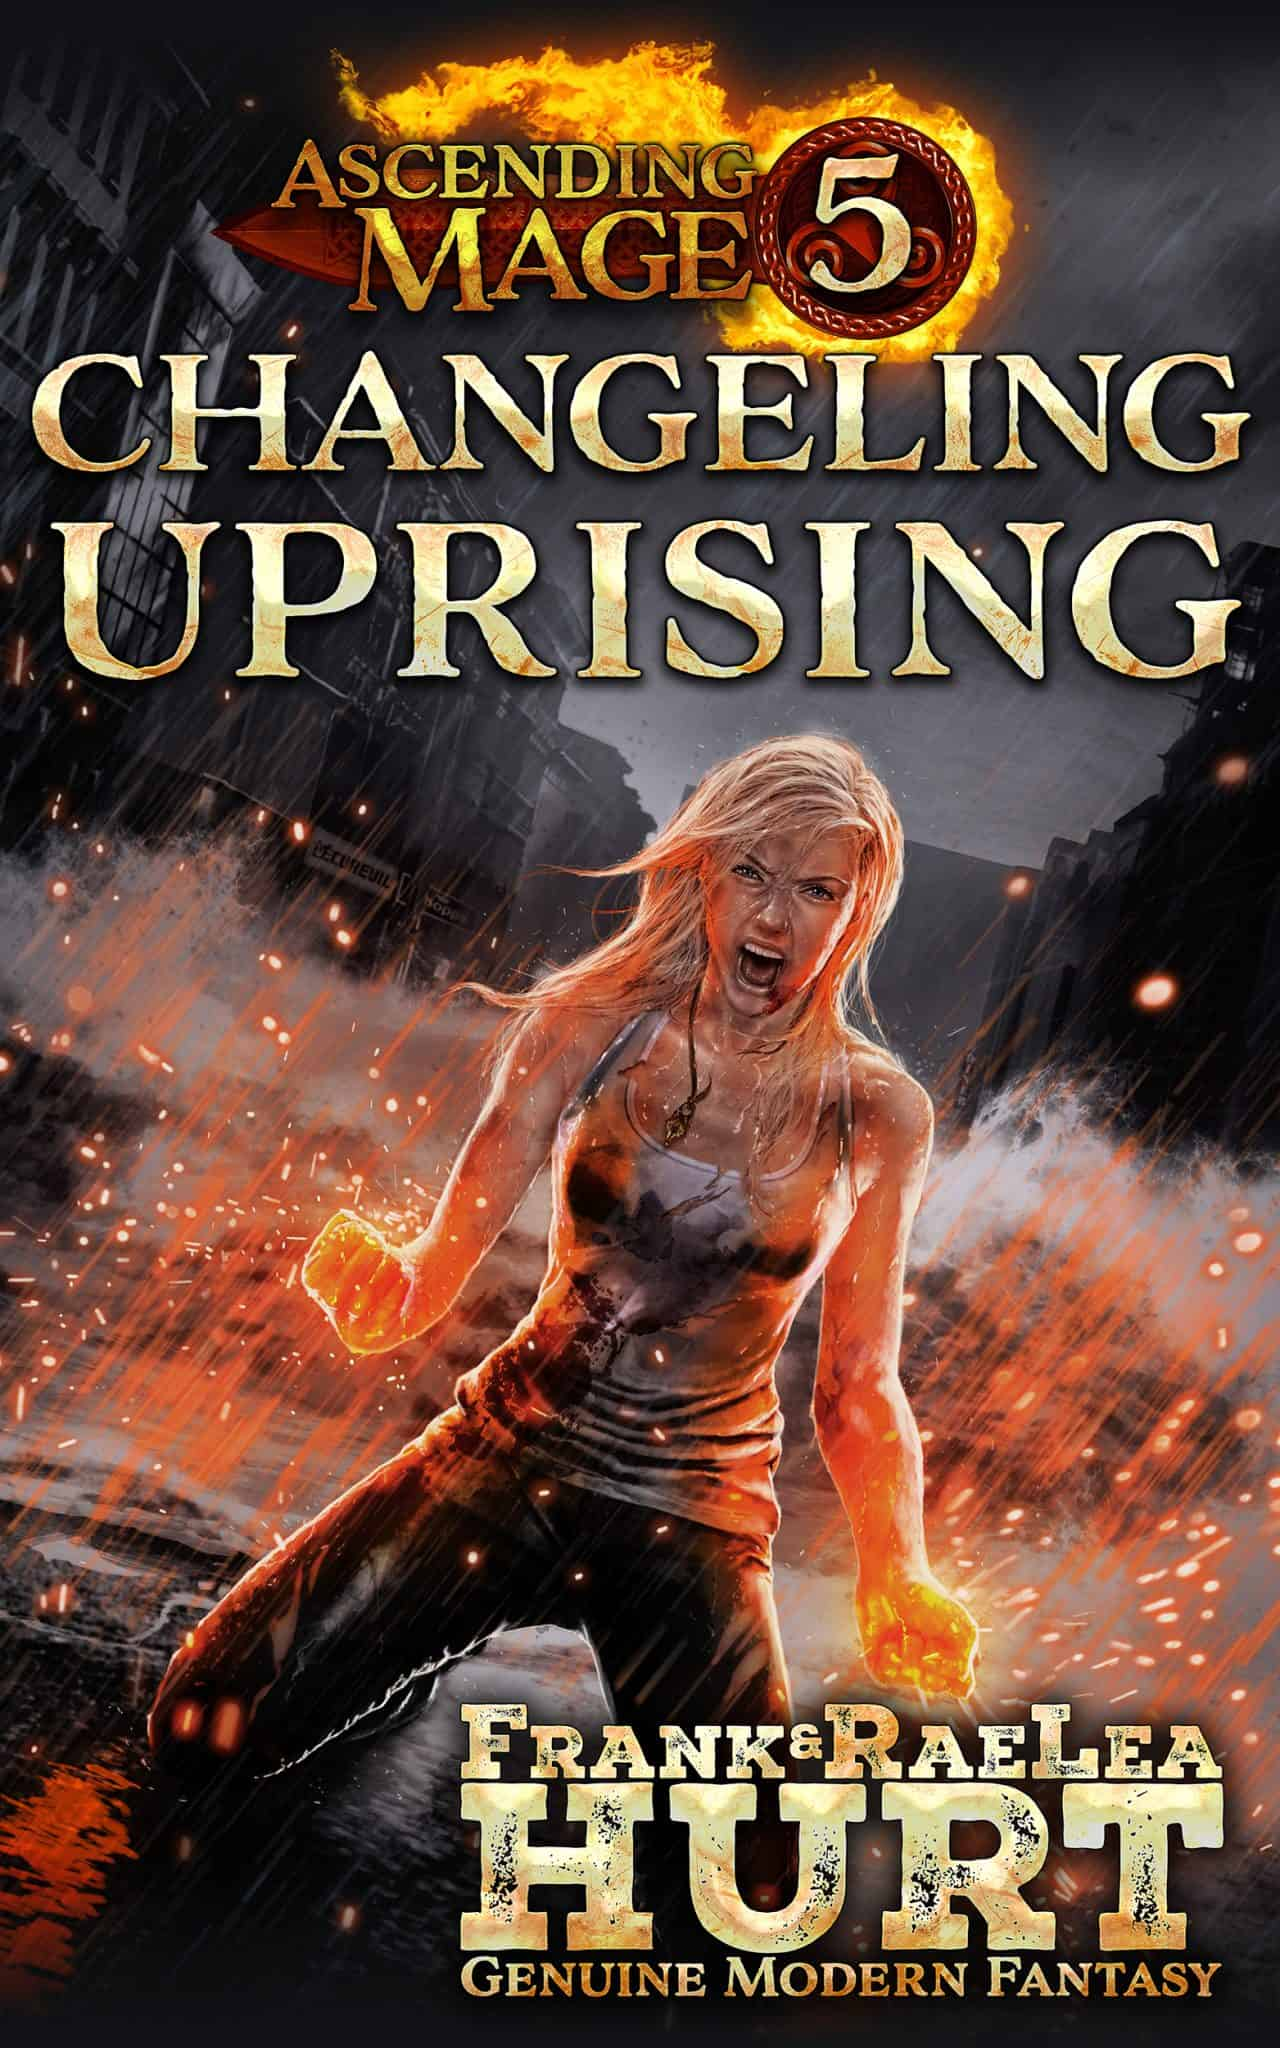 Ascending Mage 5: Changeling Uprising